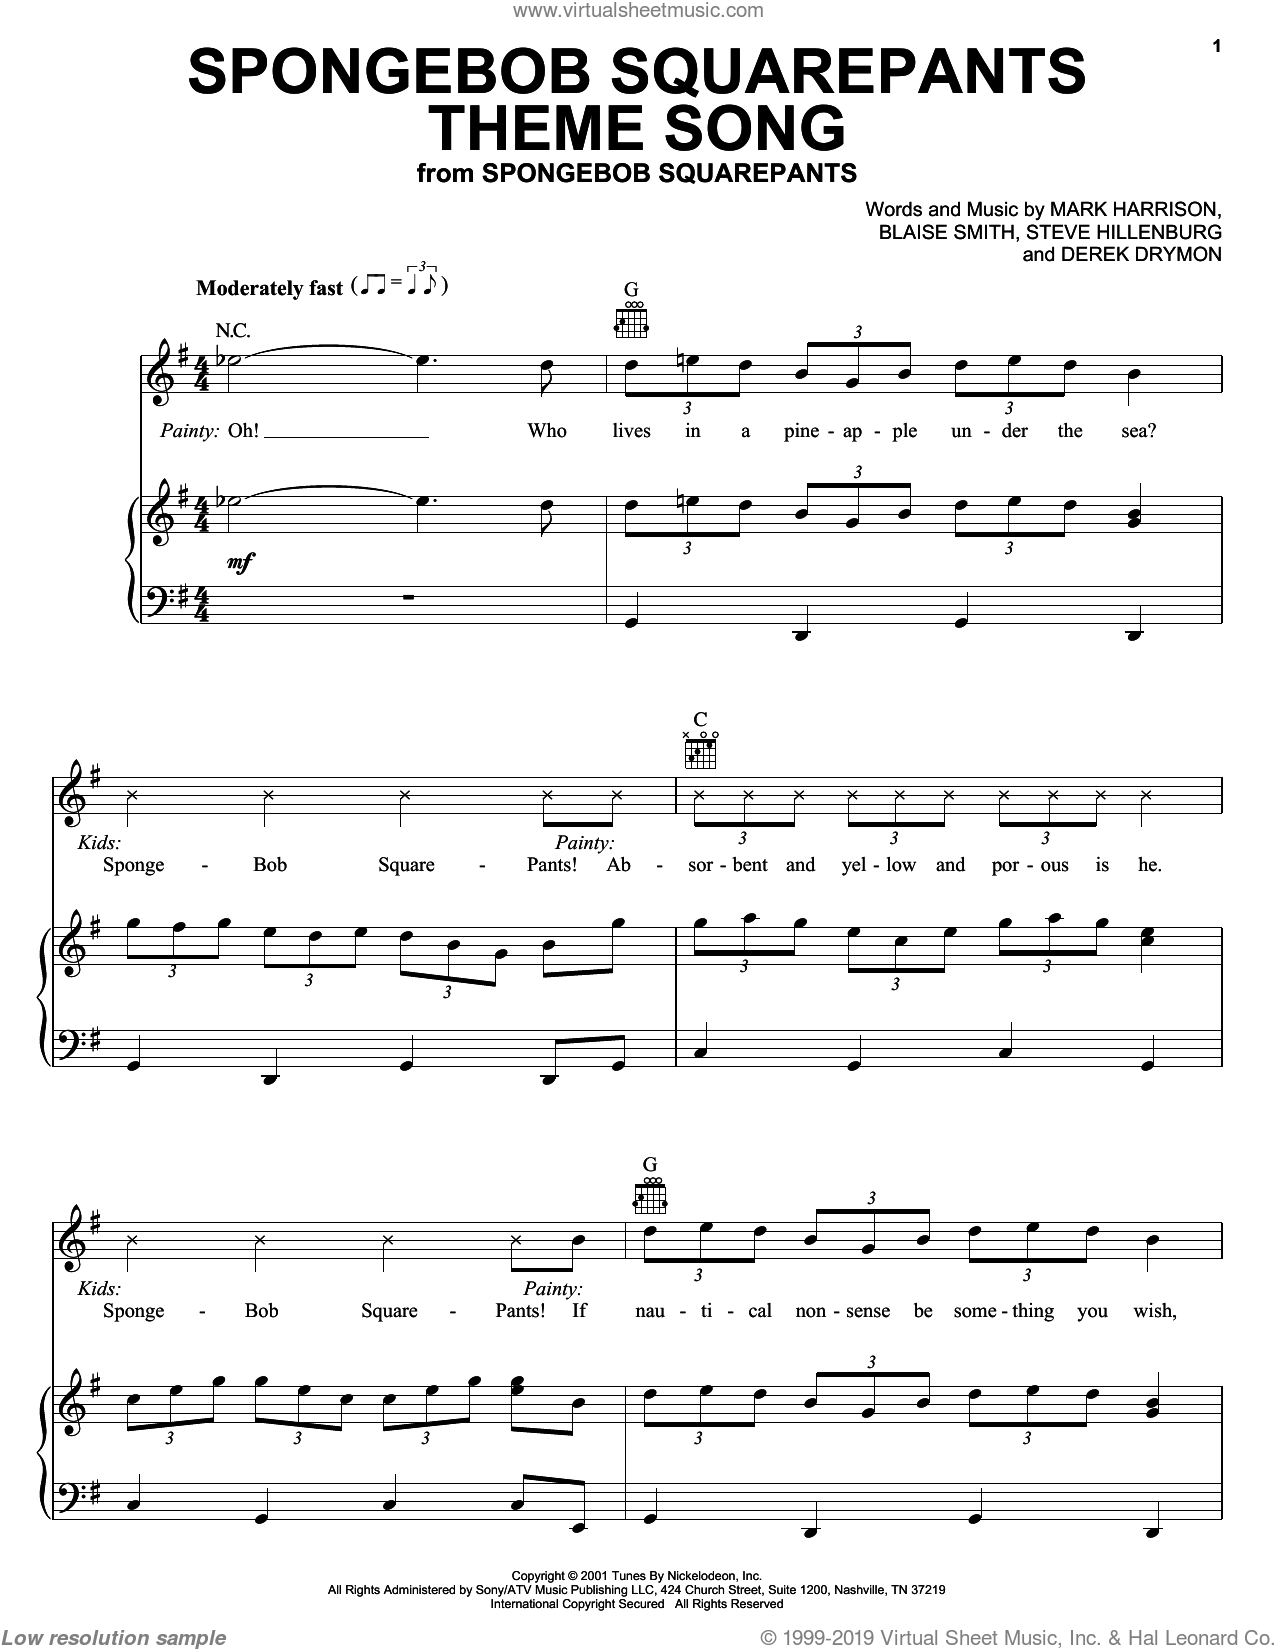 SpongeBob SquarePants Theme Song sheet music for voice, piano or guitar by Steve Hillenburg